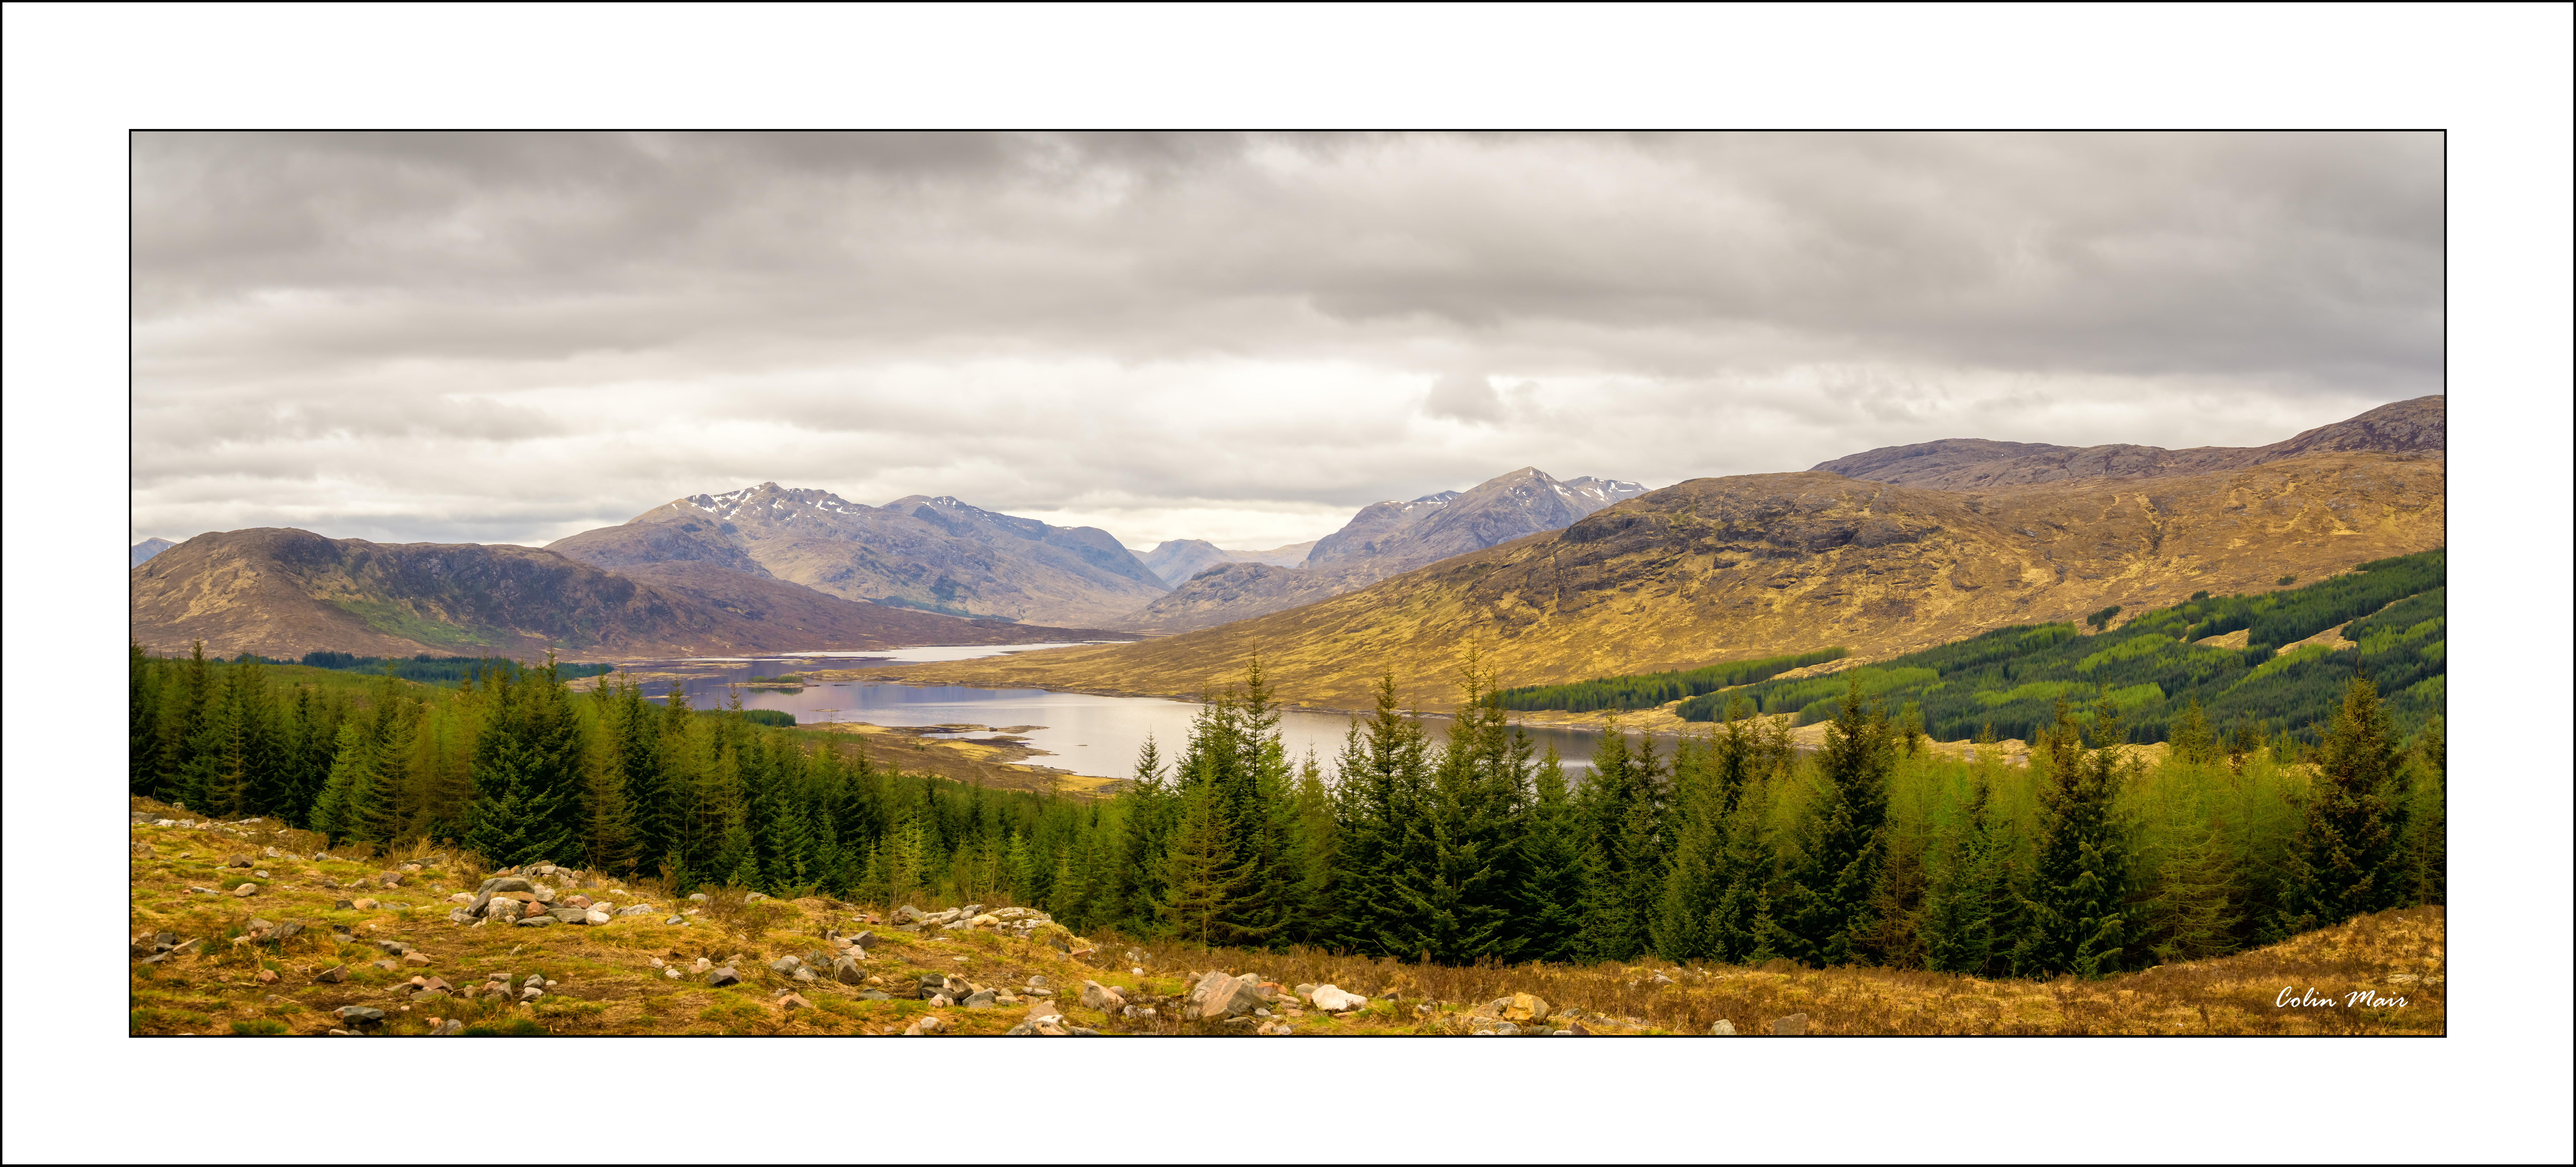 Loch Loyne Panorama - 2019-04-27th, Scotland, UK